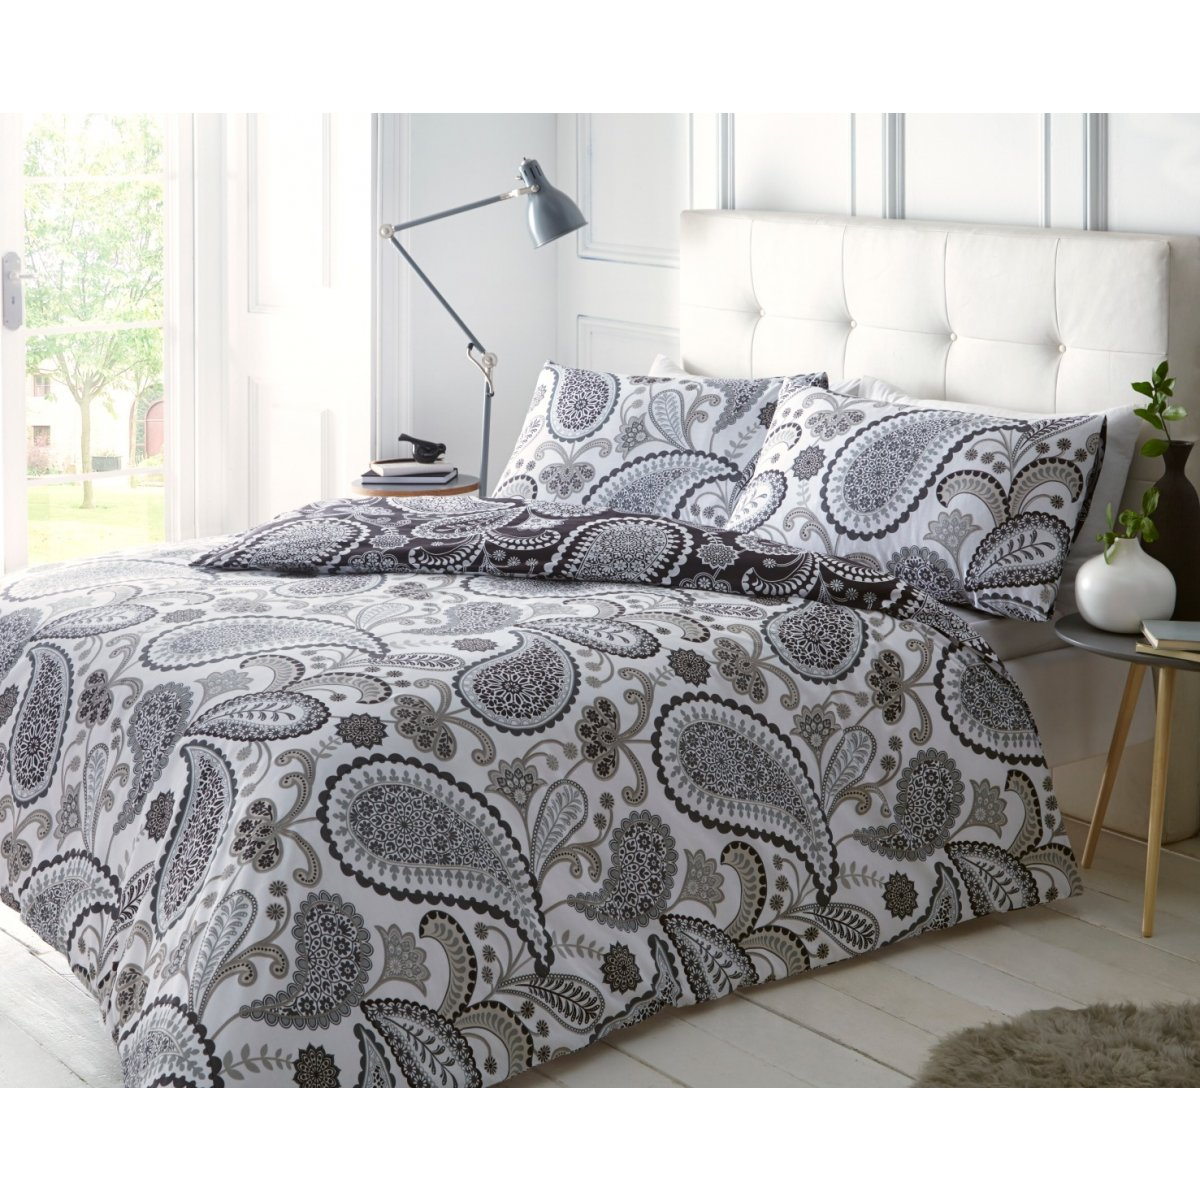 Paisley Black/Grey Bedding - Reversible Duvet Cover and Pillowcase Set